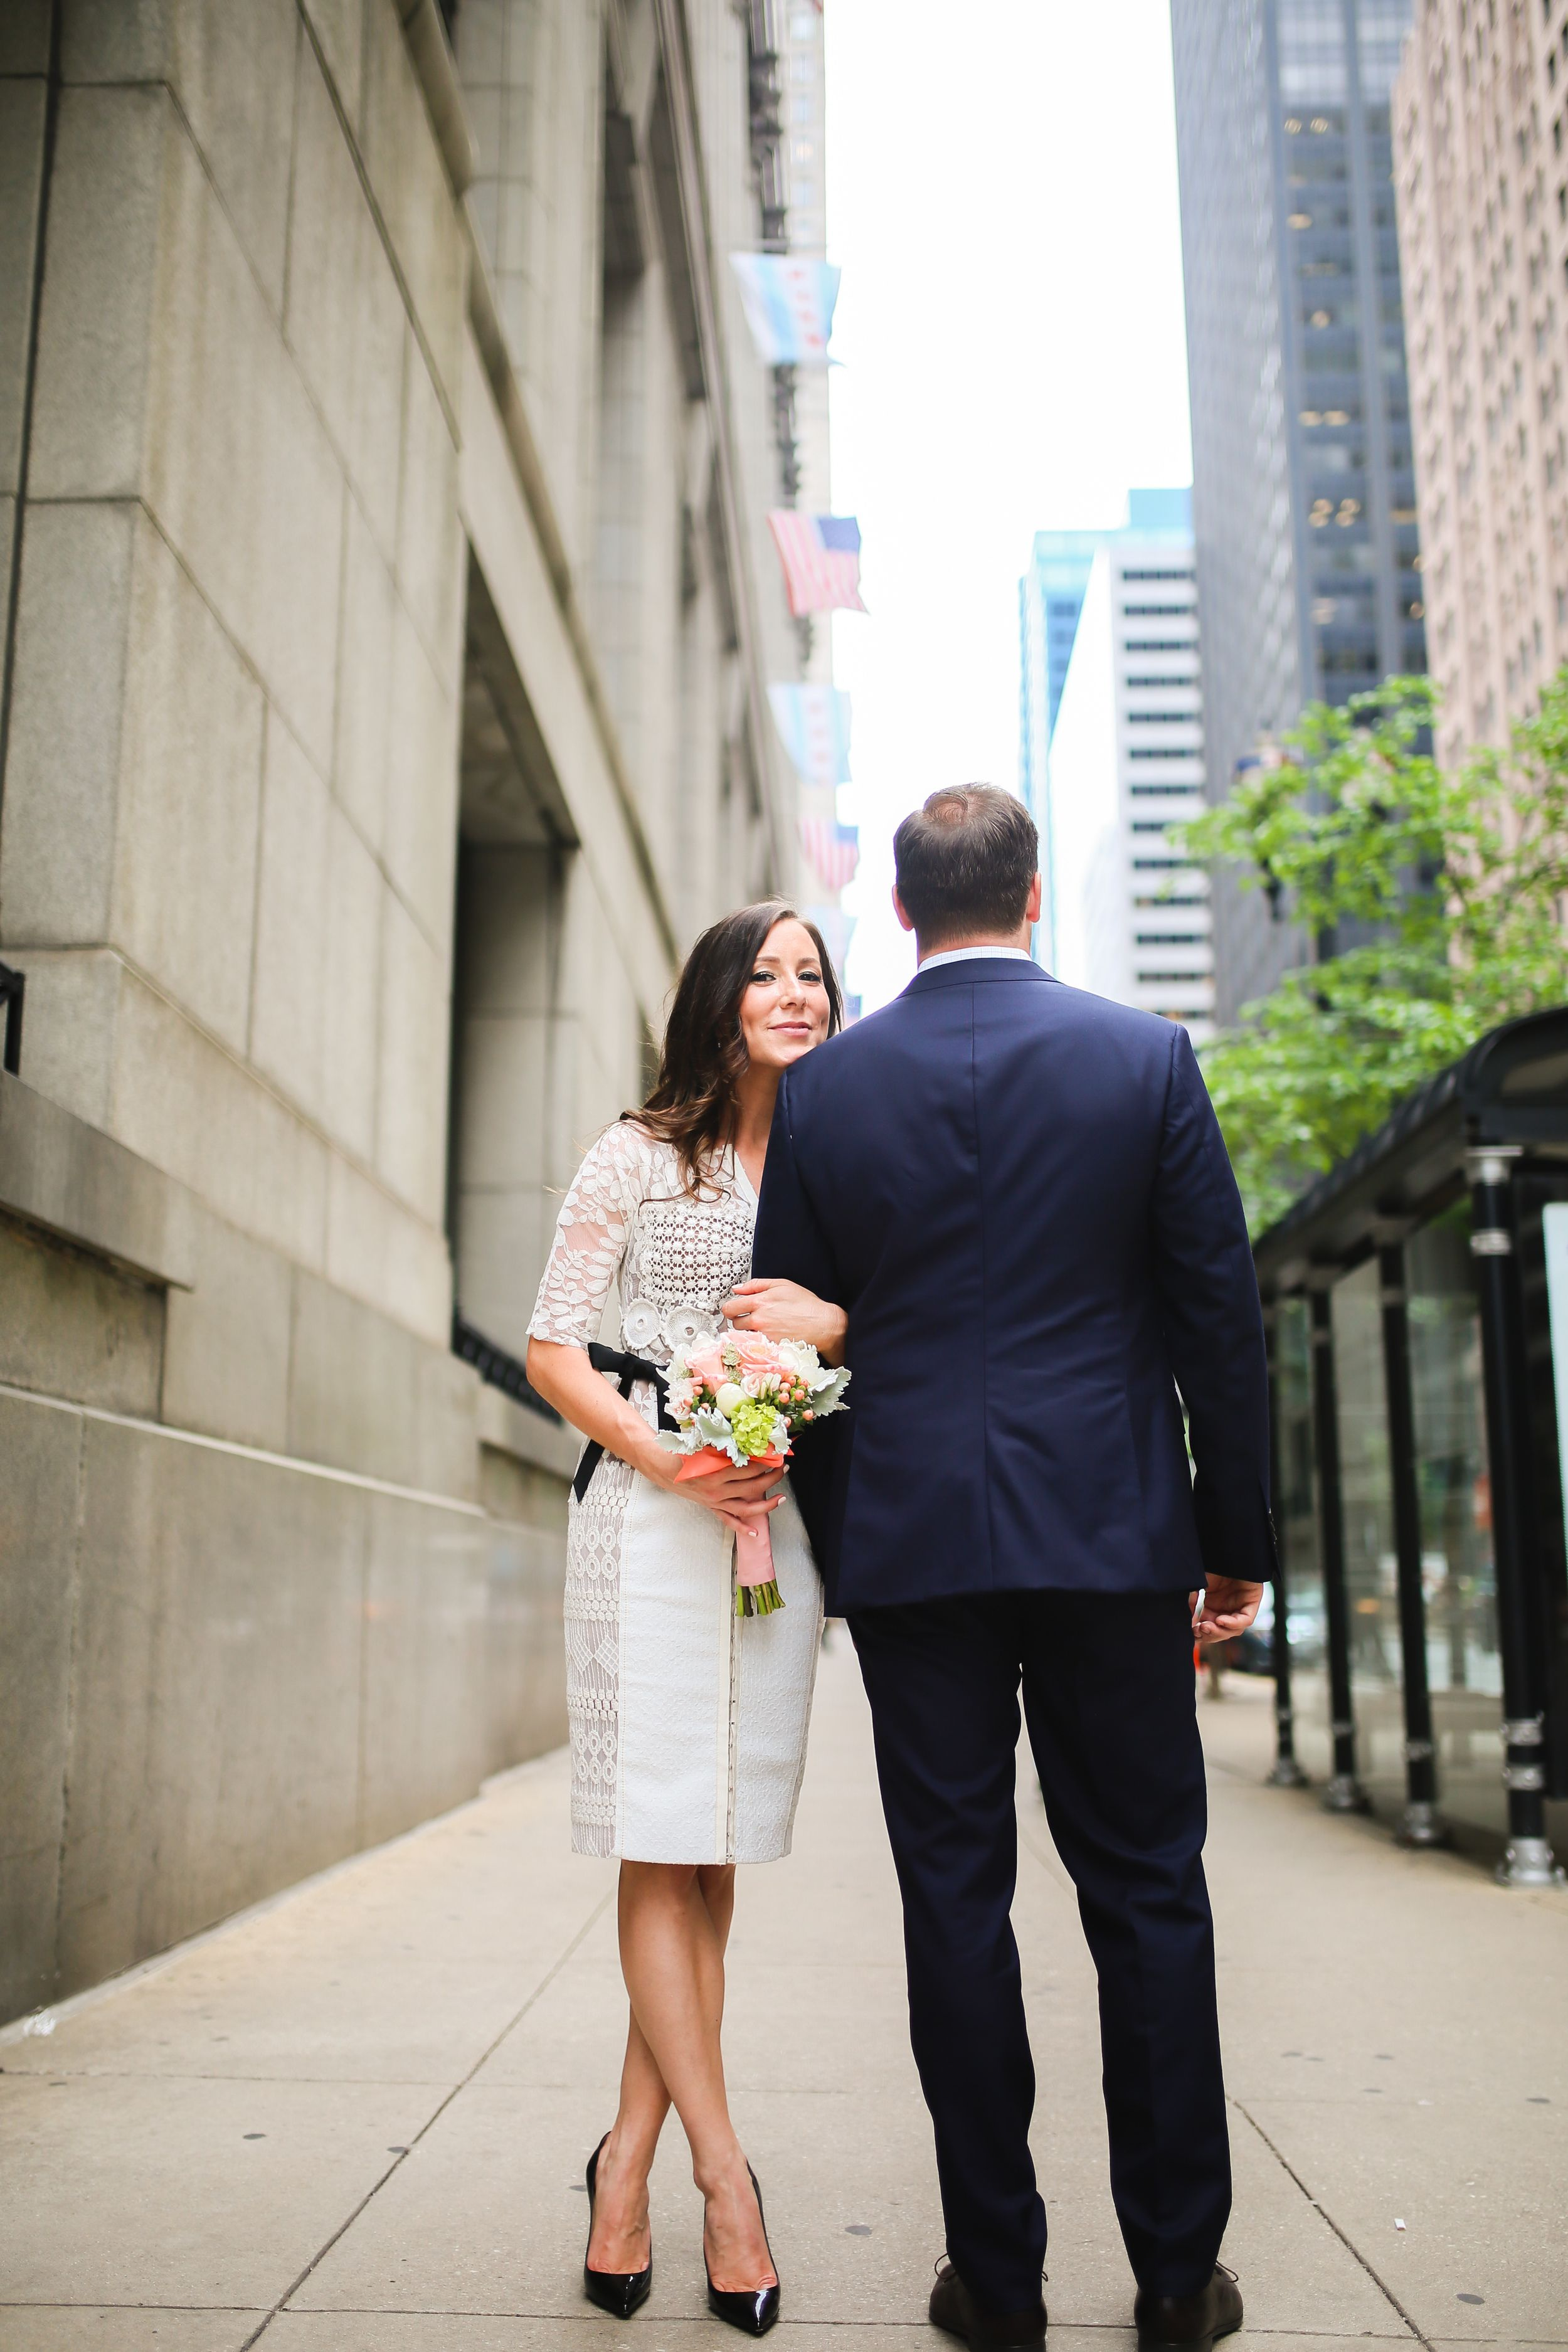 Getting Married Part One City Hall Marriage Chicago Photography Lifestyle Photographer